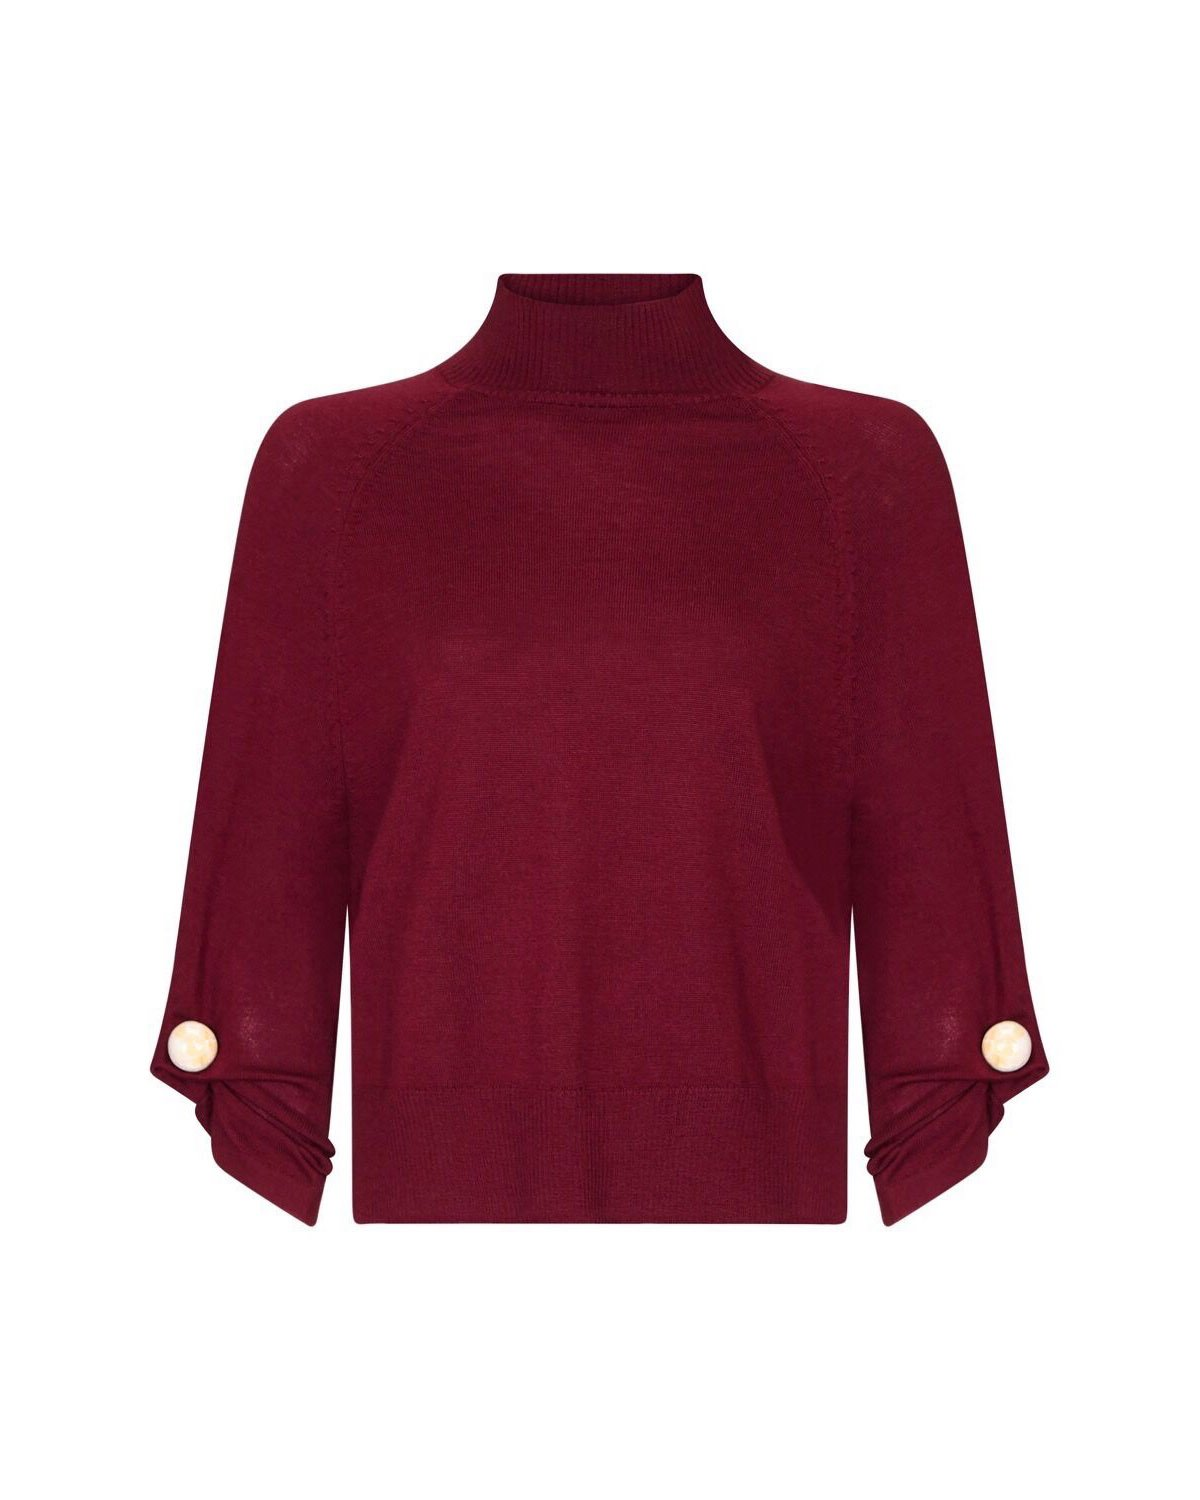 Flame Jumper - Burgundy Pearl by PAPER London on curated-crowd.com